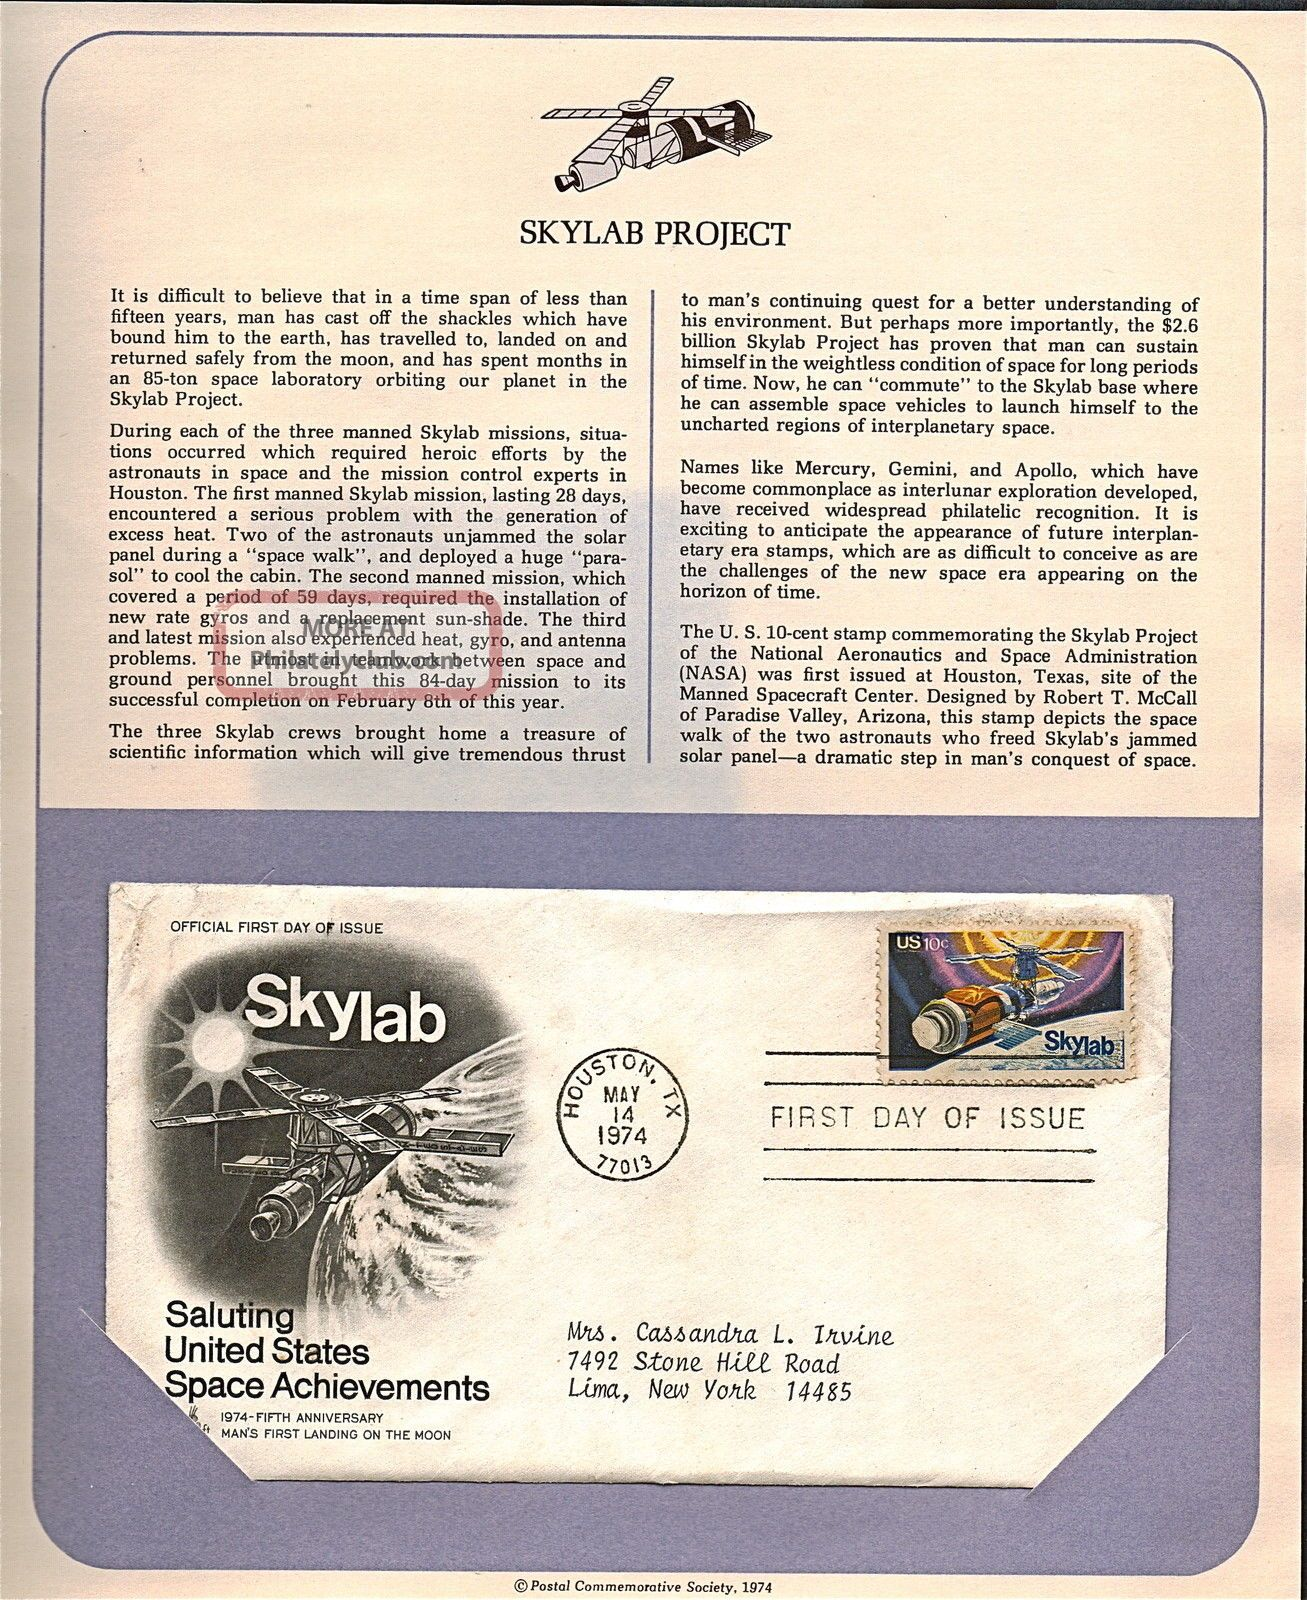 Skylab Space Achievements Fdc Cachet,  Issued 1974,  Collectible,  Scott 1529 F30 Worldwide photo